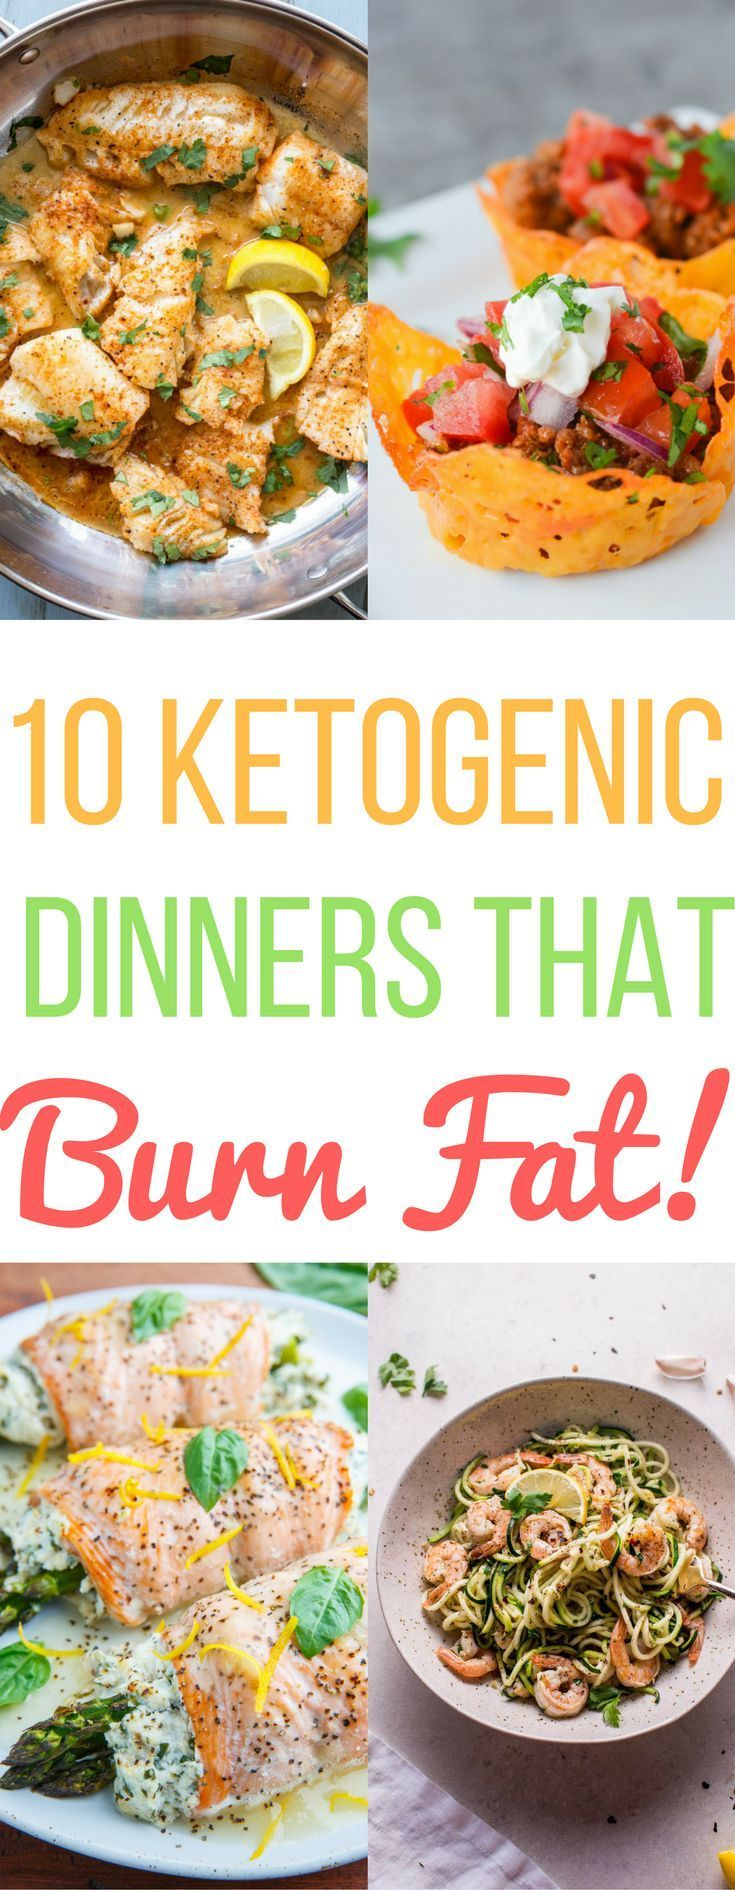 10 tasty ketogenic dinners recipes ideas low carb keto diet healthy 10 tasty ketogenic dinners recipes ideas low carb keto diet healthy food family easy quick dinner forumfinder Choice Image